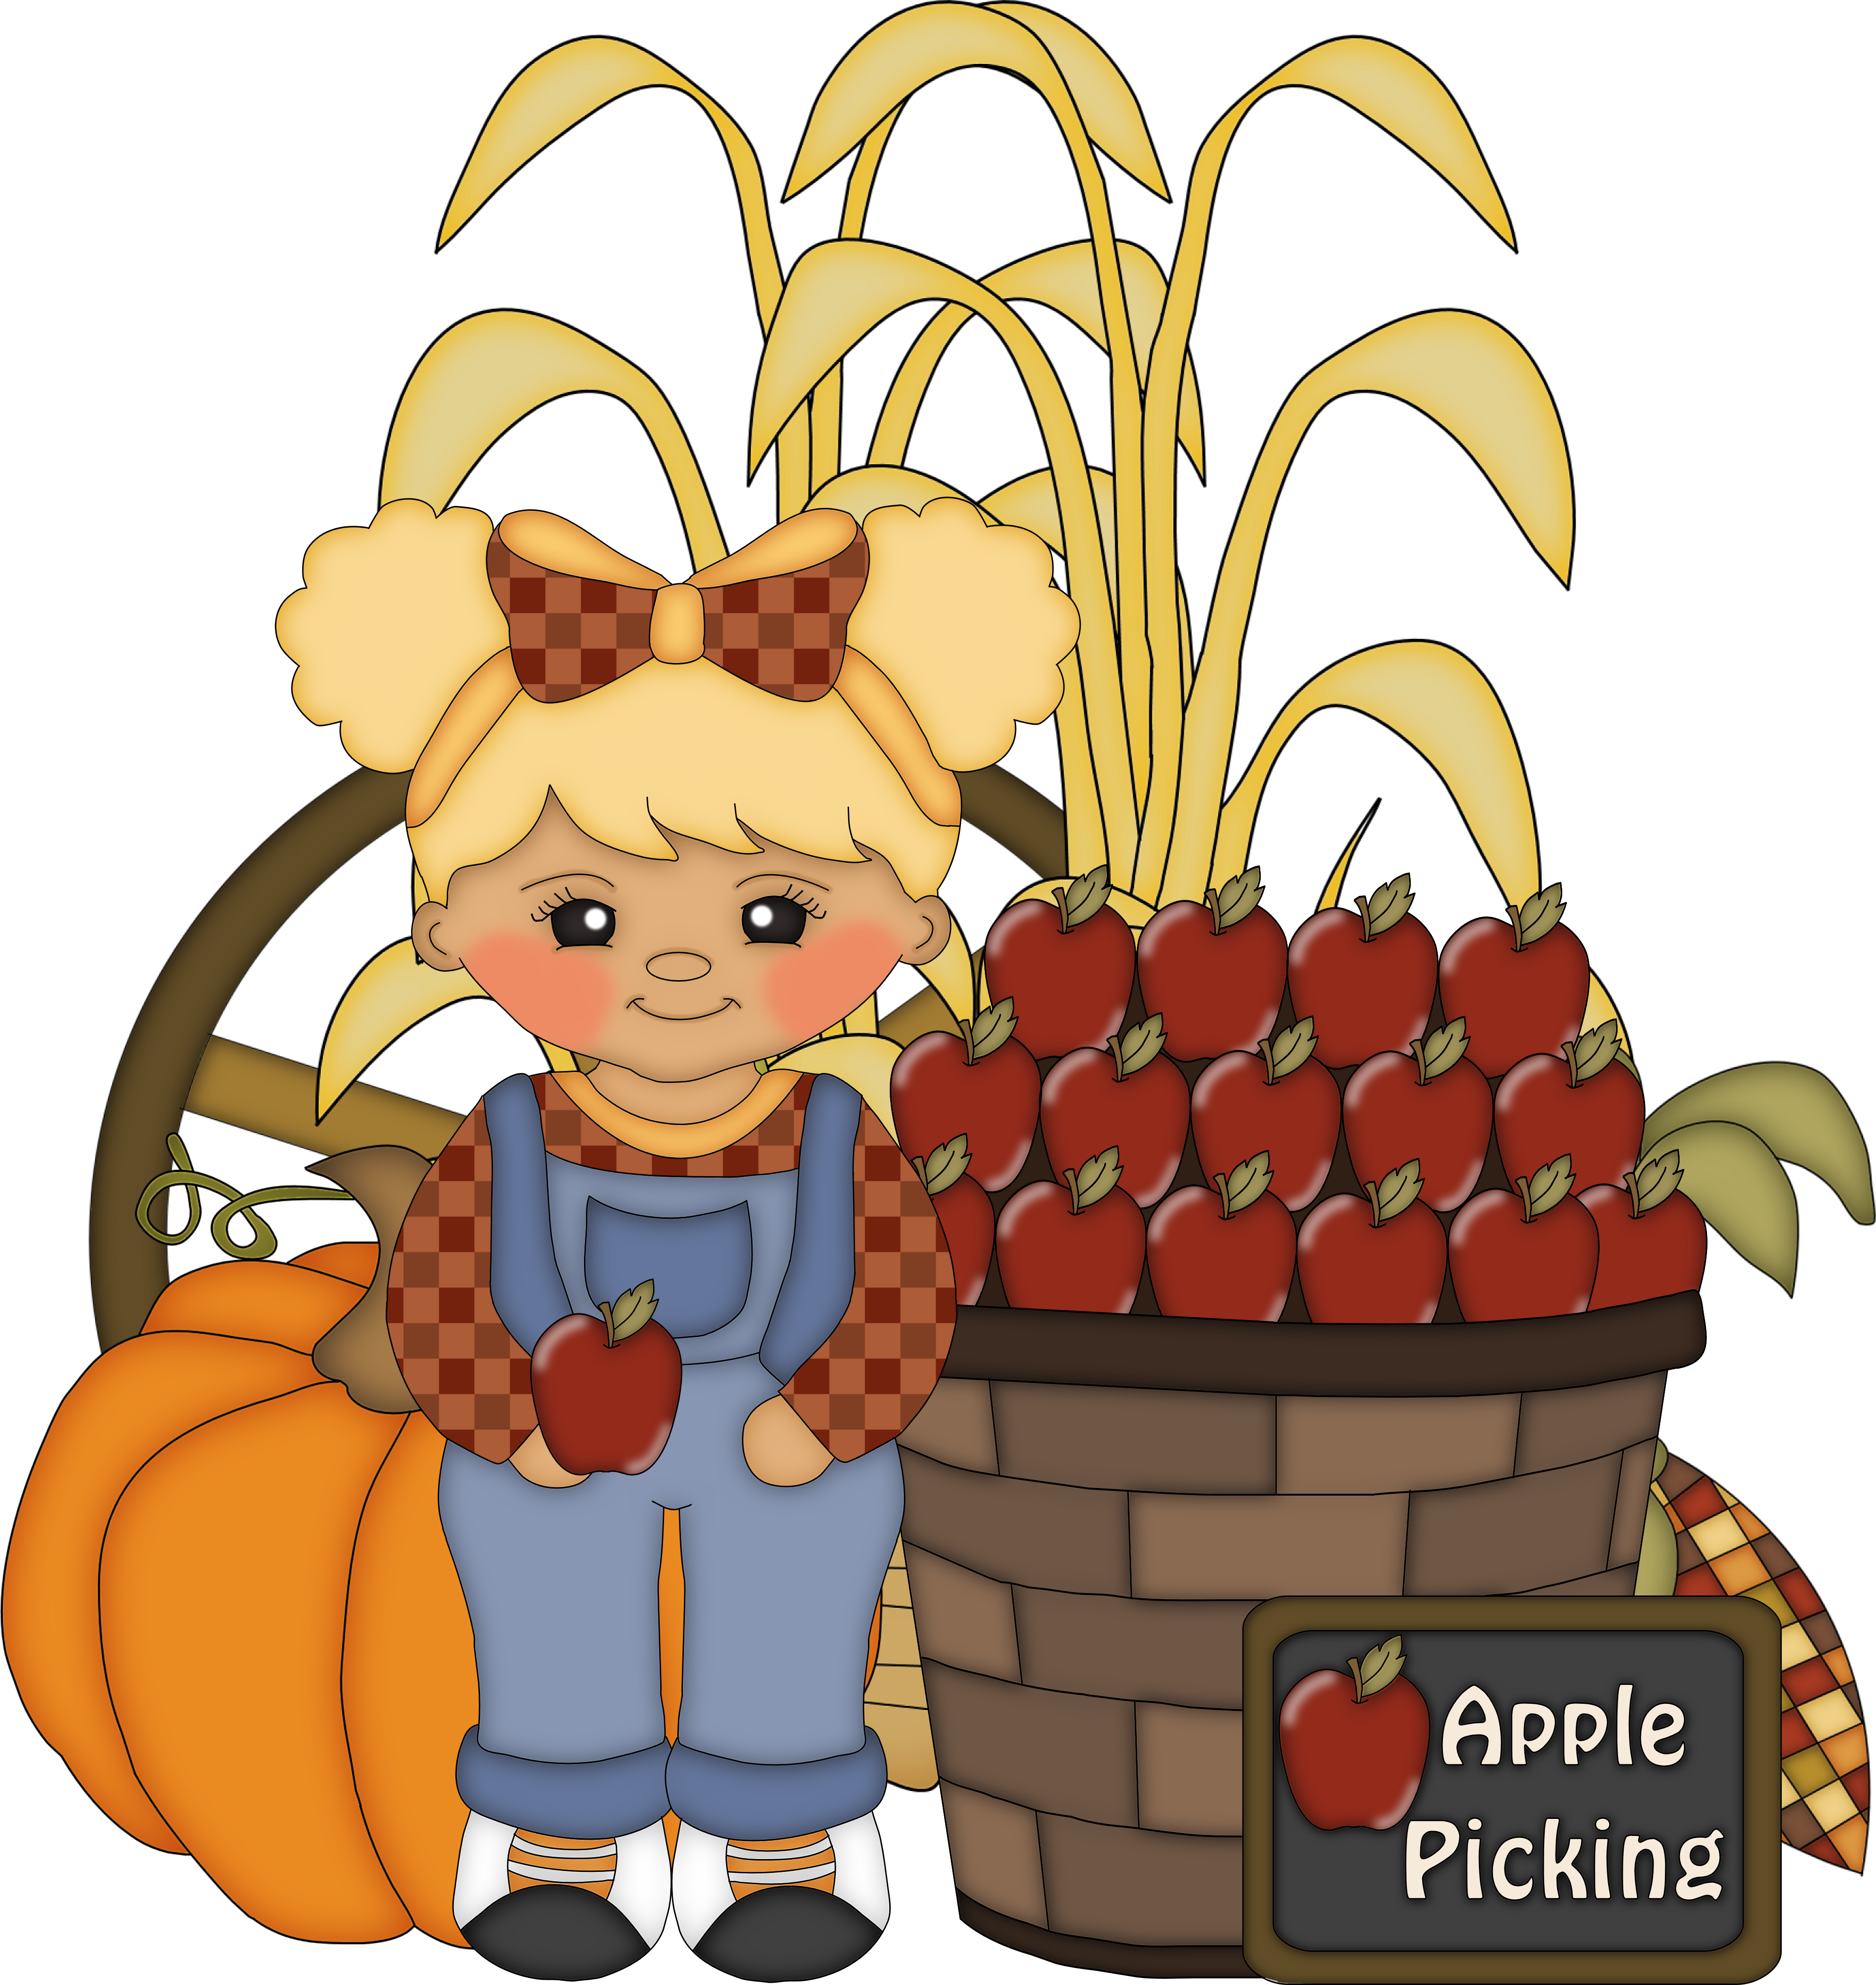 Apple butter festival clipart graphic free library Magazine For Homeschooled Kids » Fall Festival Ideas for Kids graphic free library